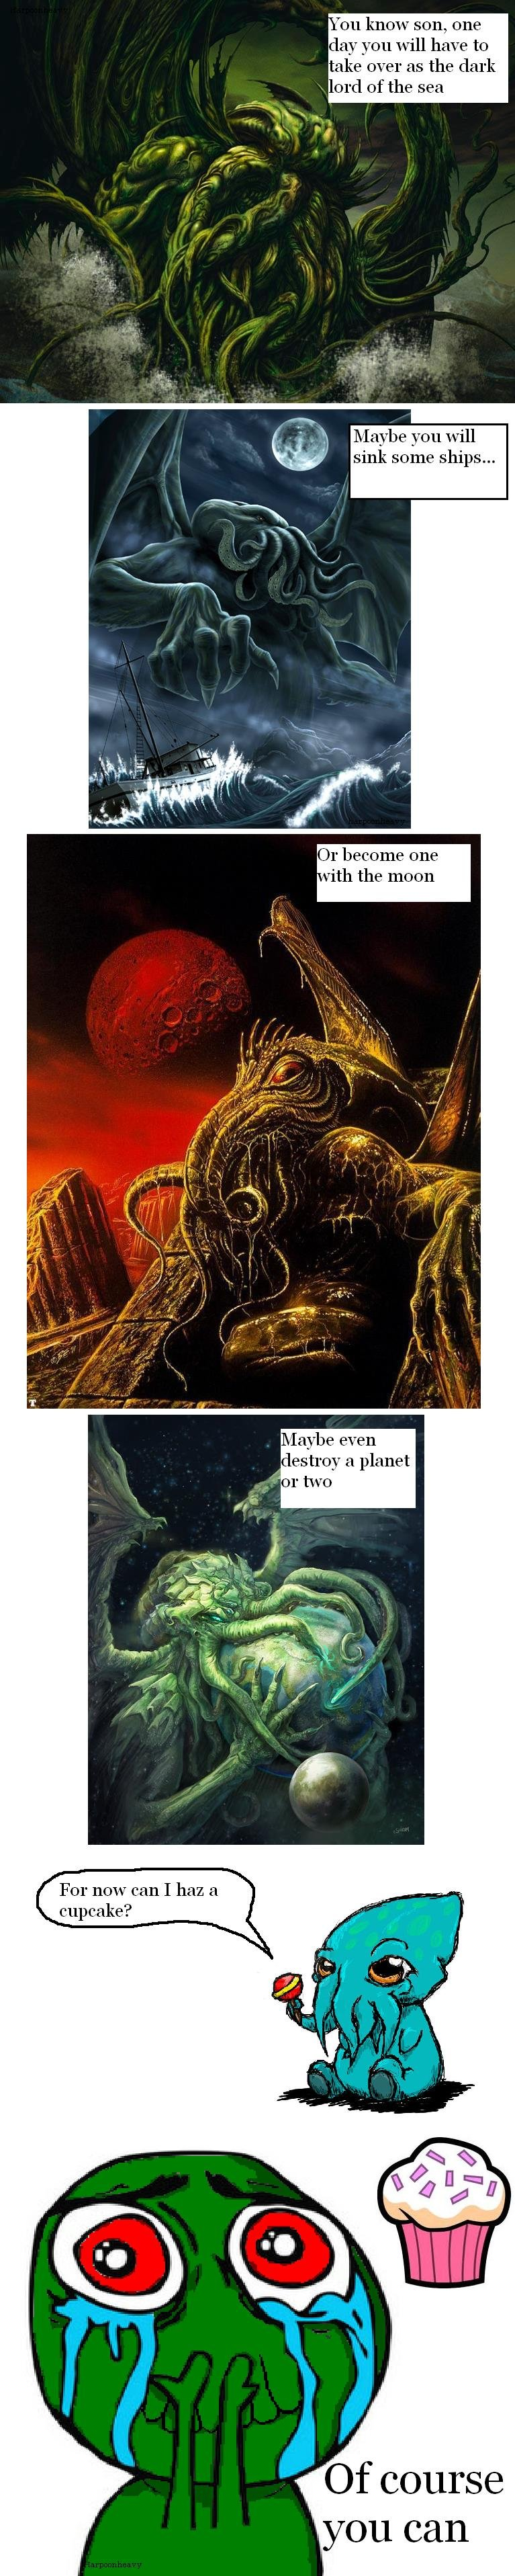 """The Dark Lord Cthulhu. Oc by me. Found all the pictures on the Interwebz except the last one in which I made.. on know son. one have """" e you will sink sohne shi"""